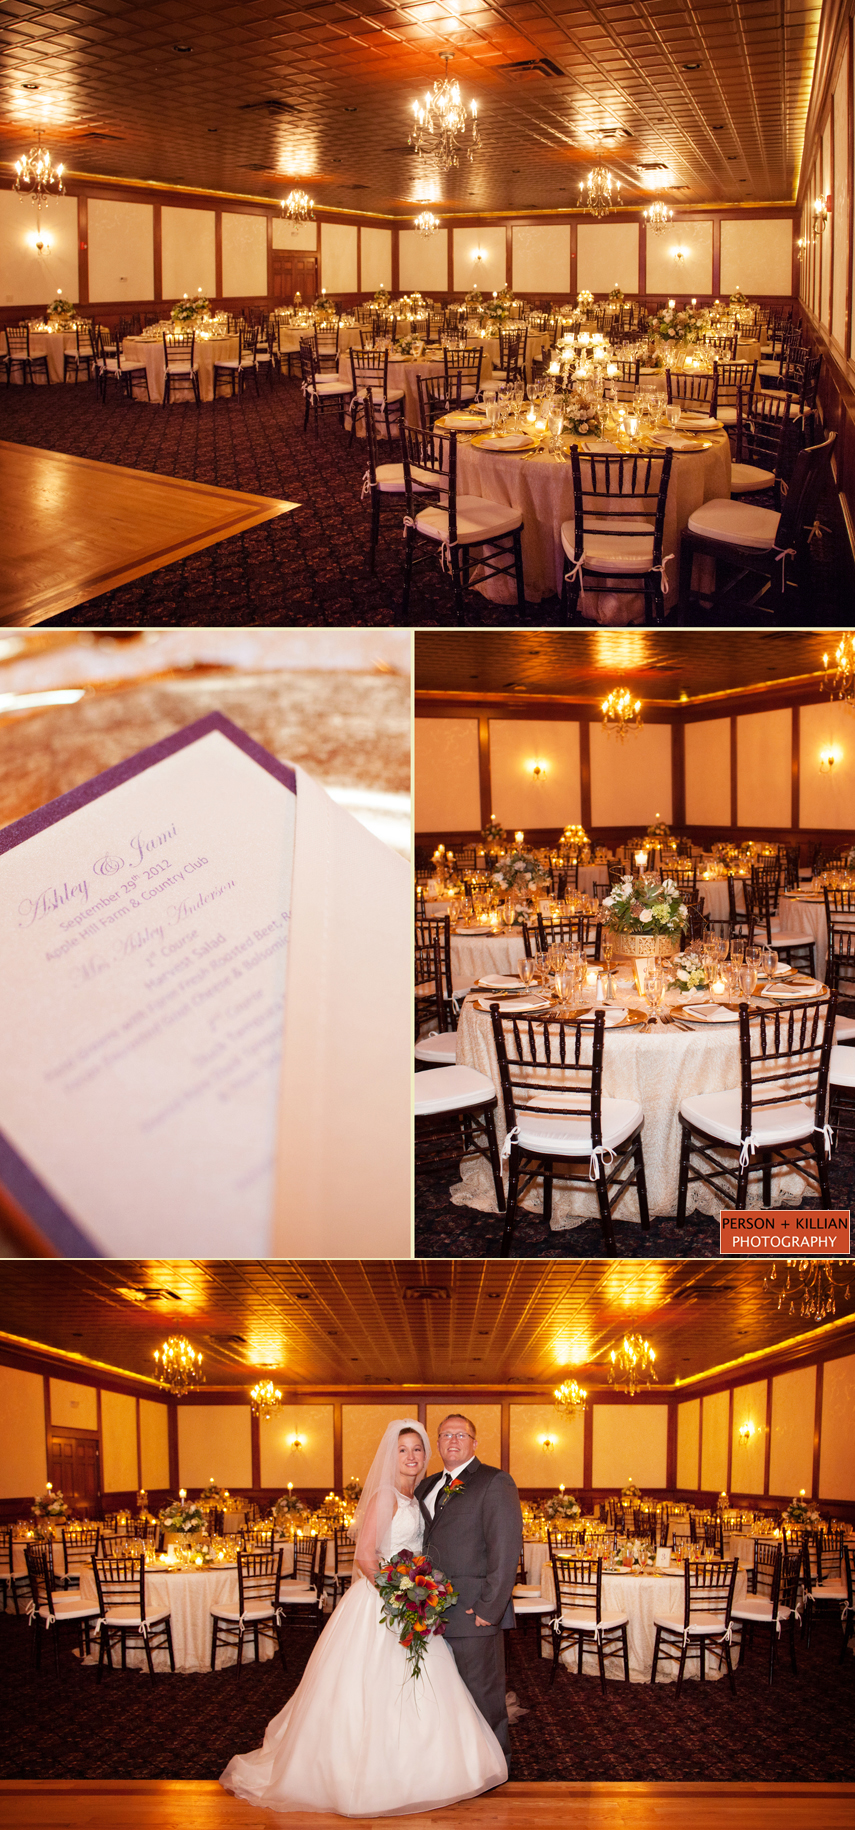 Rustic Country Wedding At The Apple Hill Farm And Country Club